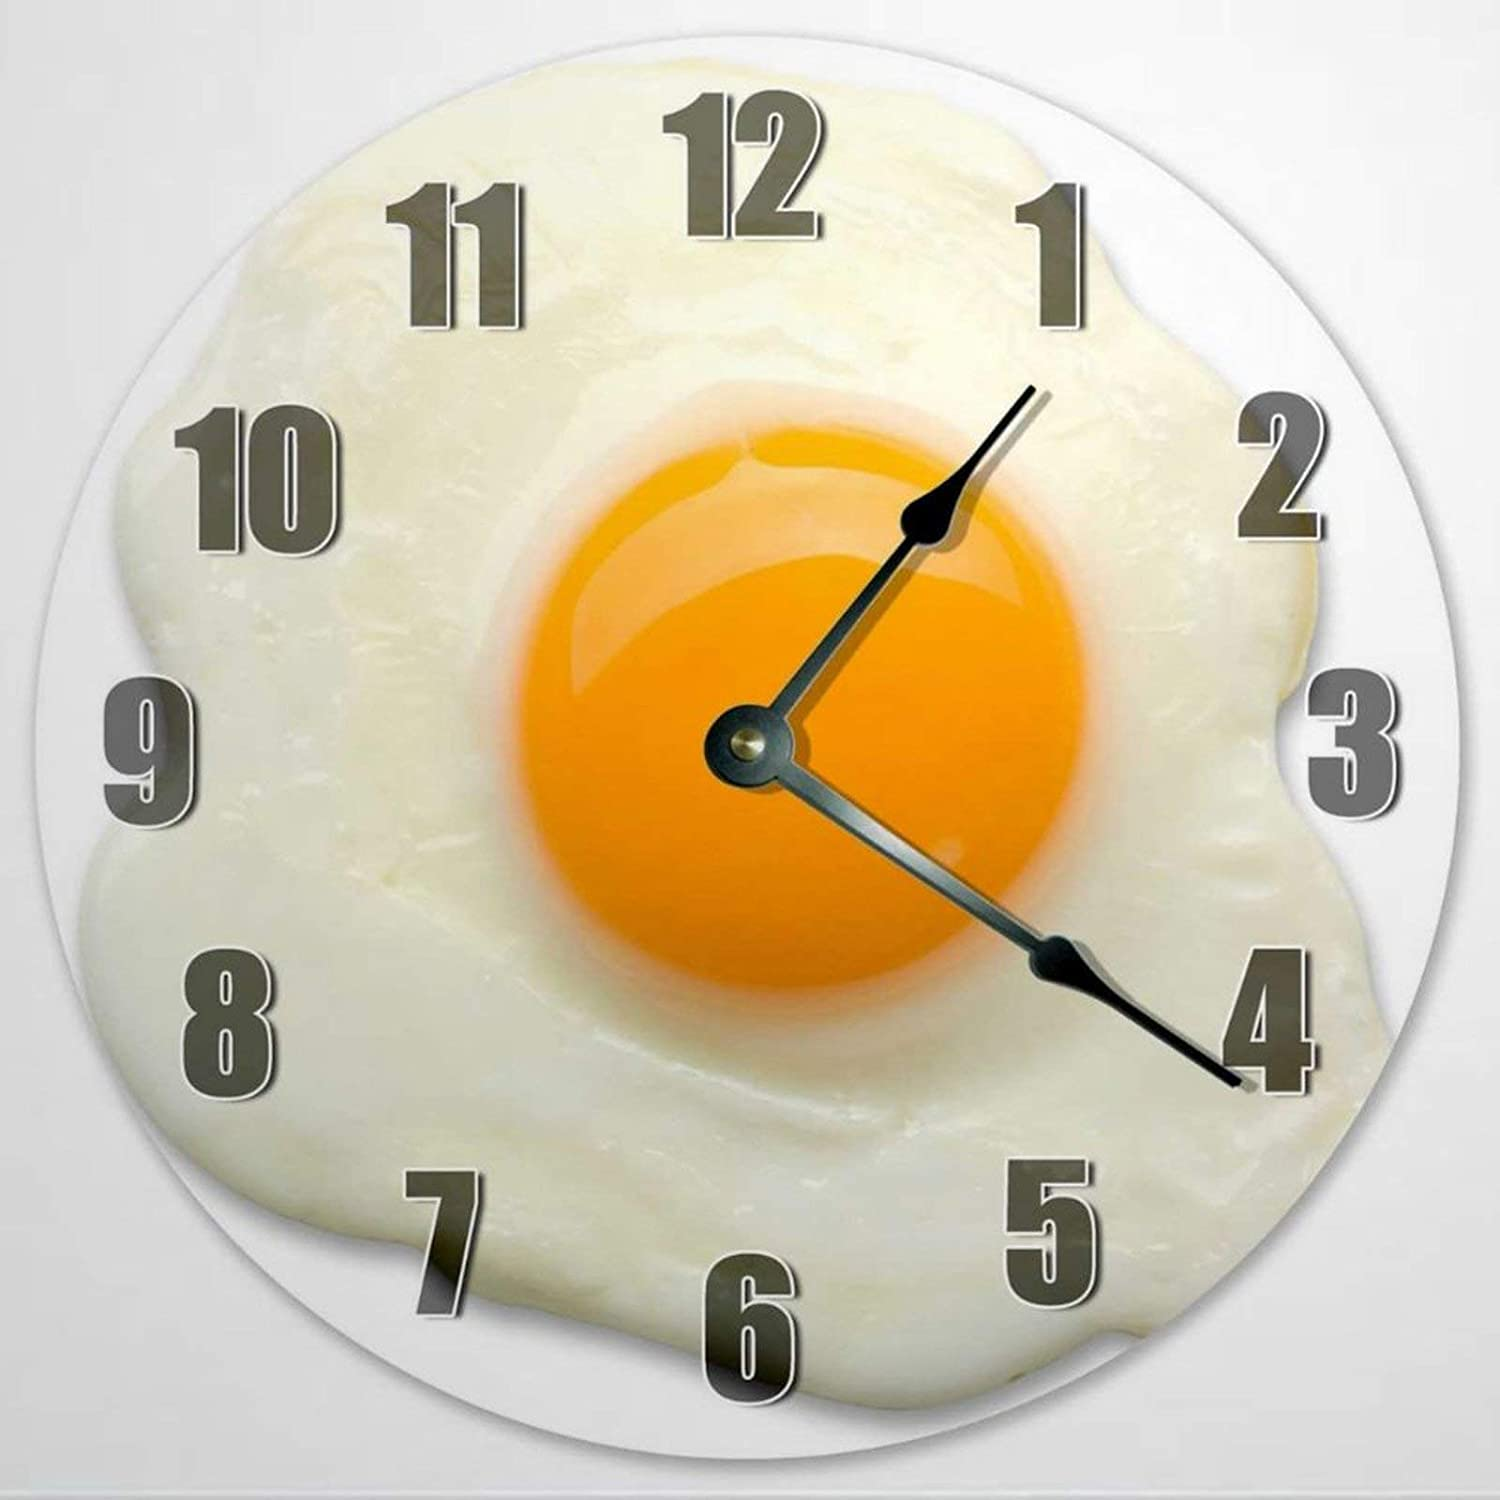 Sunny Side Up Egg Wooden Wall Clock Silent Non Ticking Food Clock 12 Inch Battery Operated Round Easy to Read Kitchen Clock for Home Office School